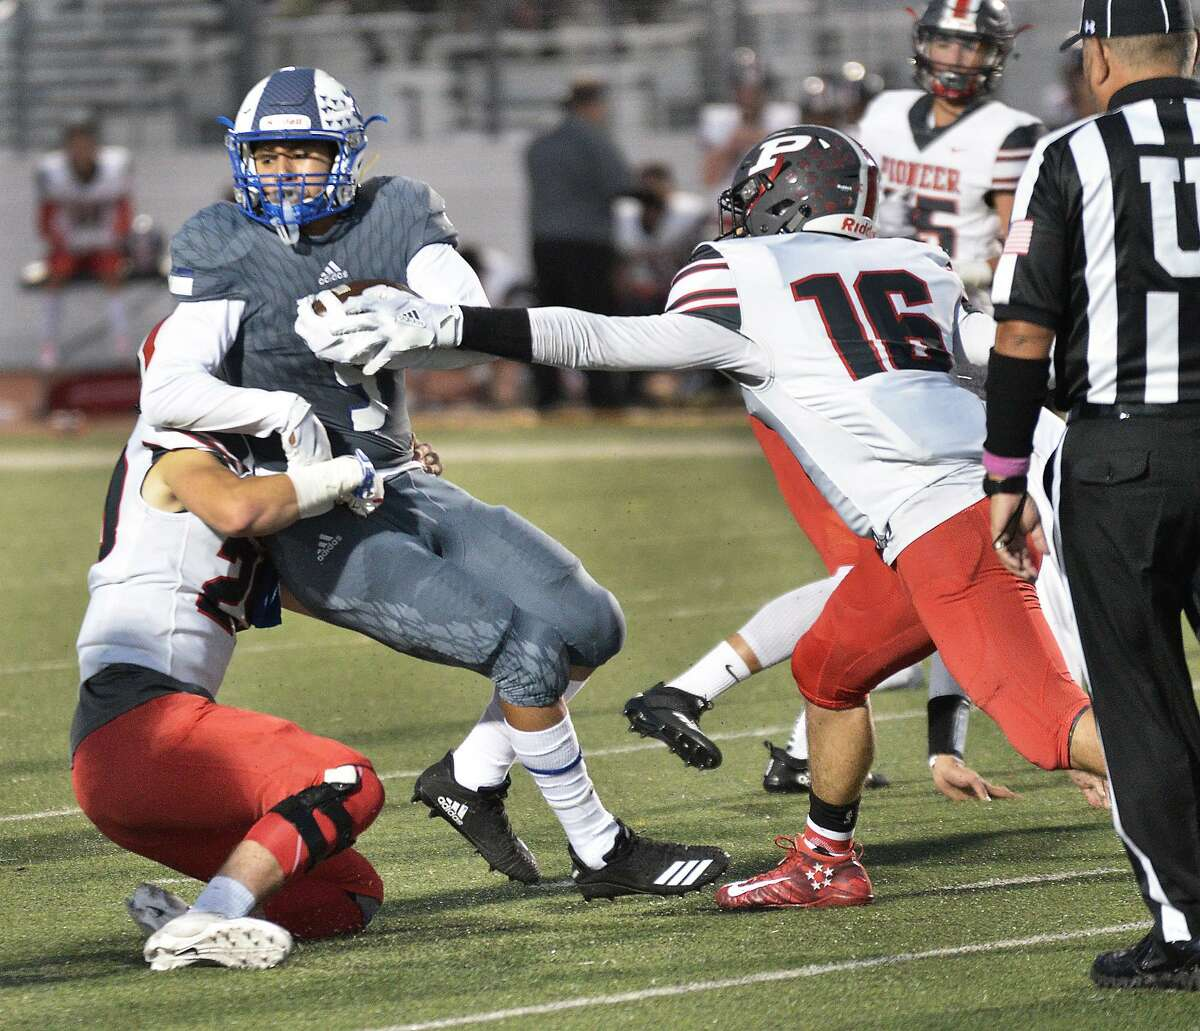 Alex Guzman and Cigarroa were shutout for the third time in four games Friday against Valley View.